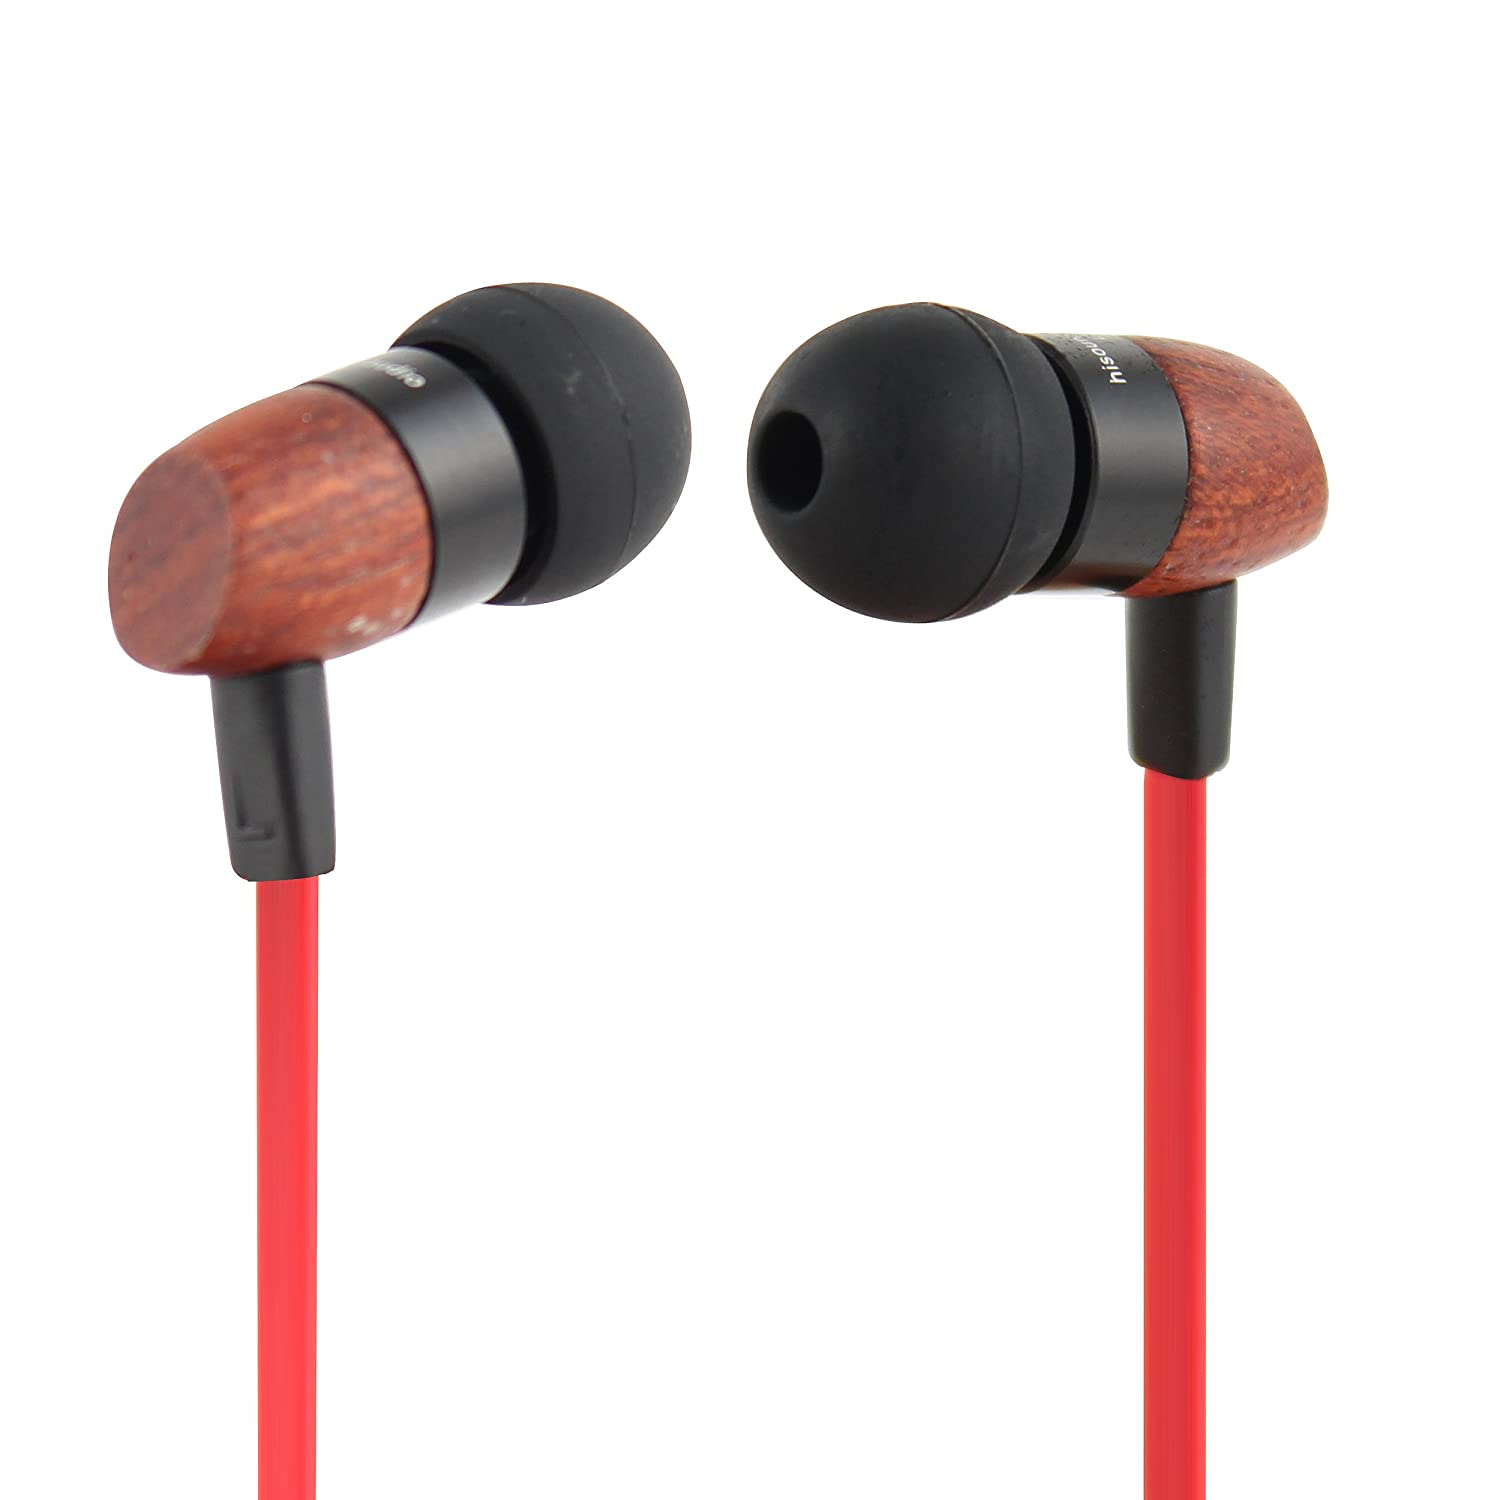 Bass enhanced sony earbuds